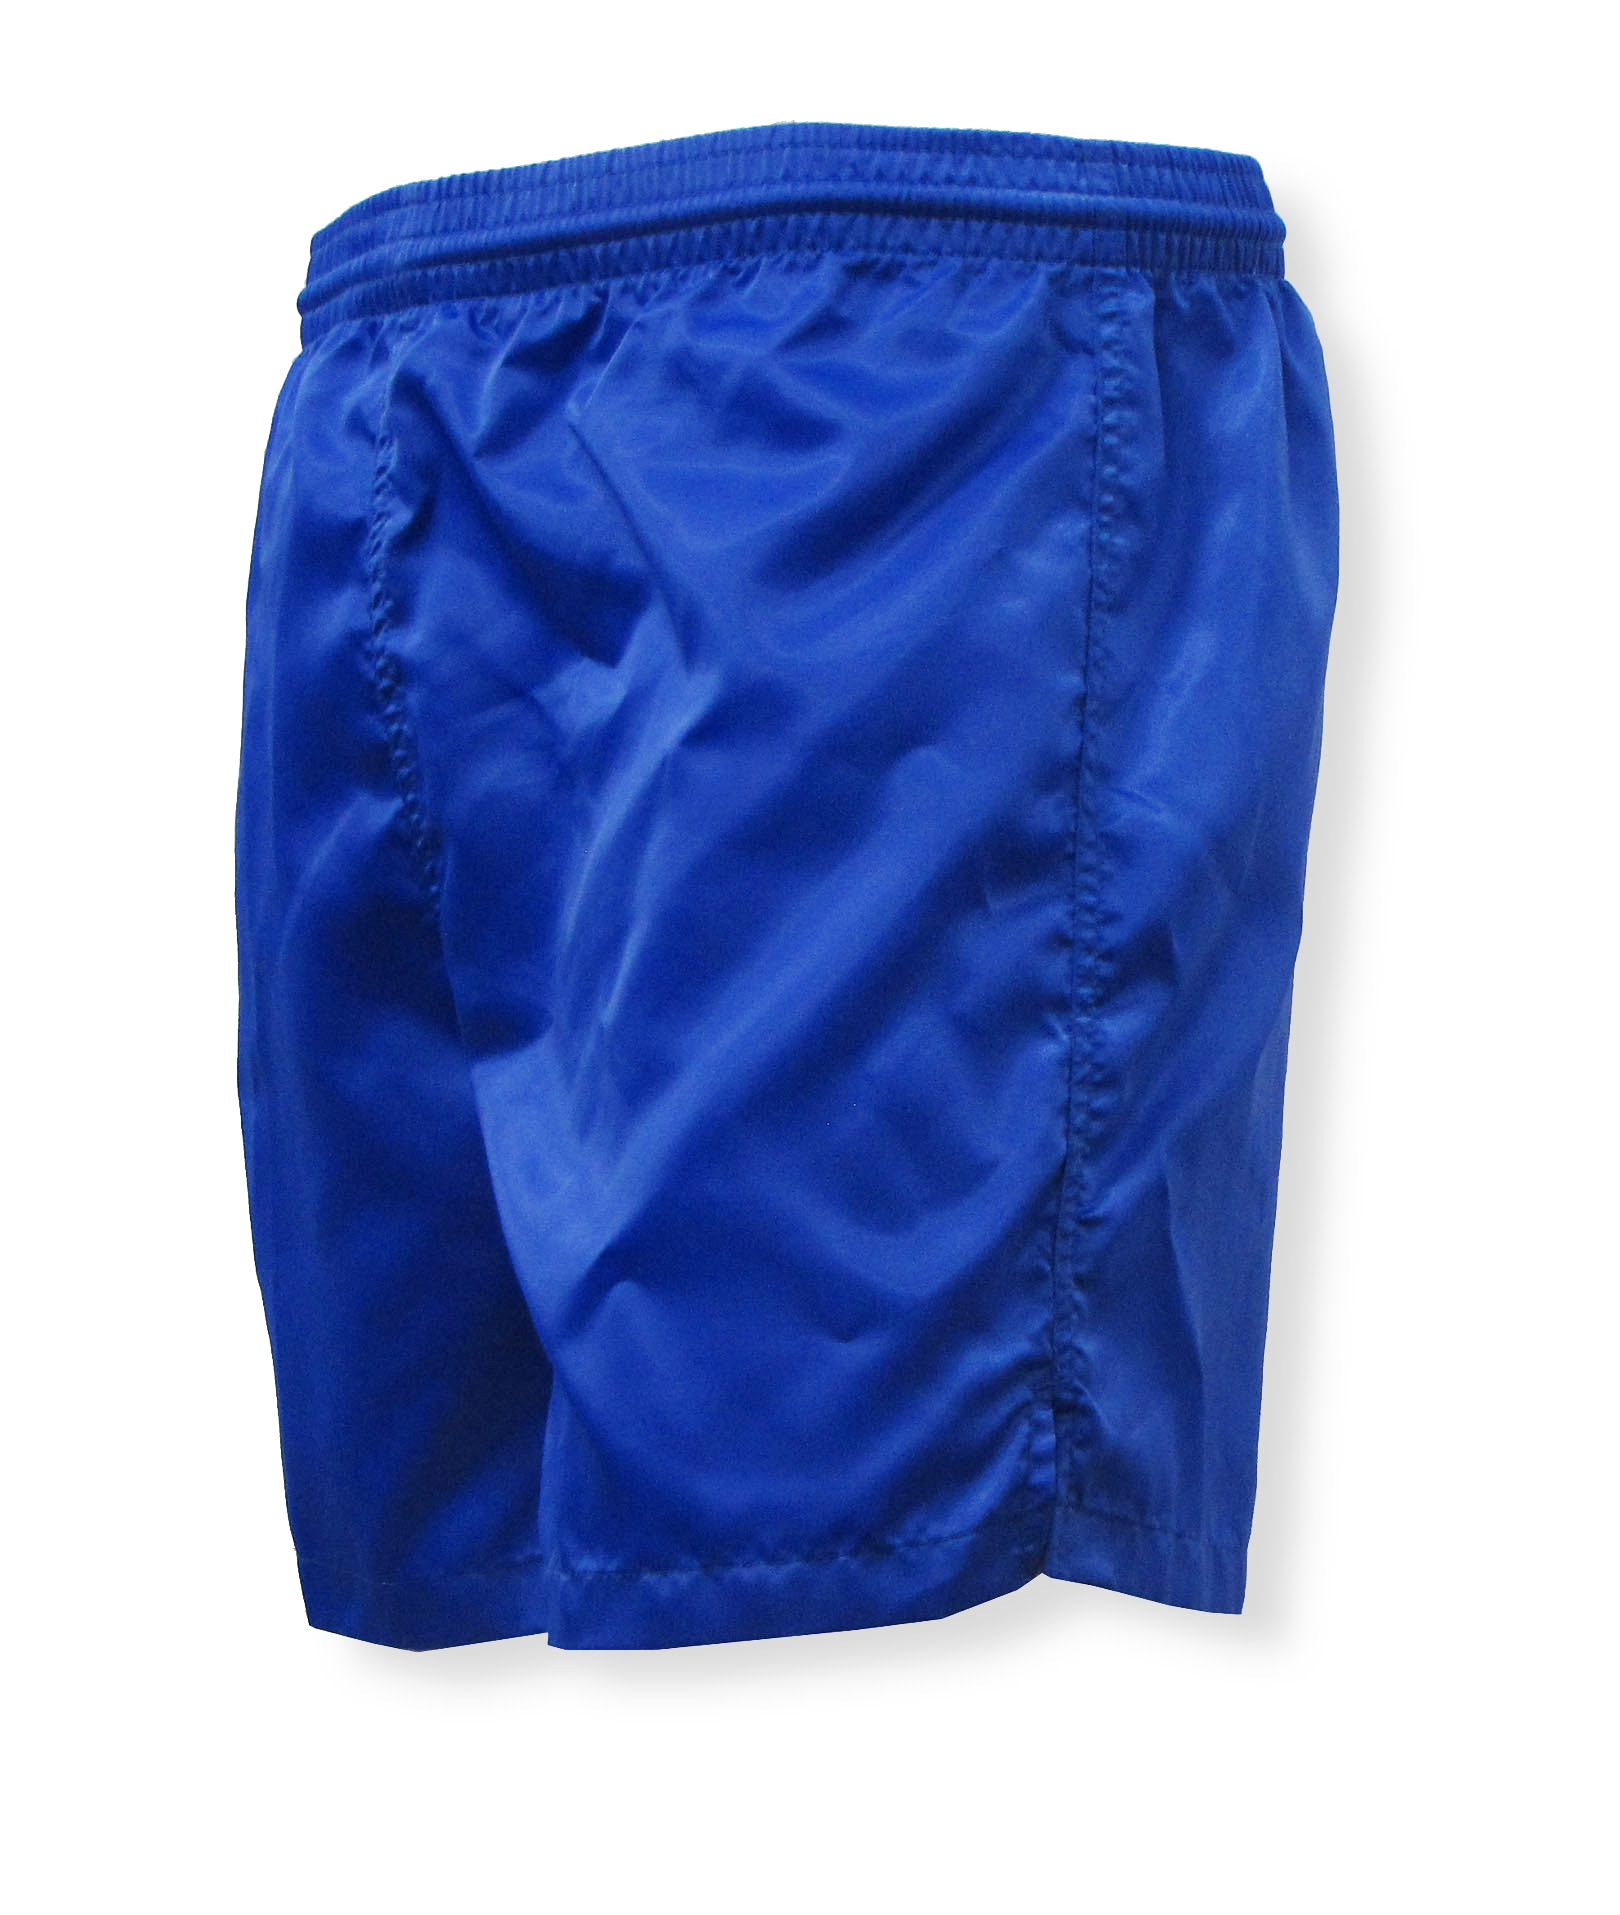 Olympic nylon satin shorts in royal by Code Four Athletics